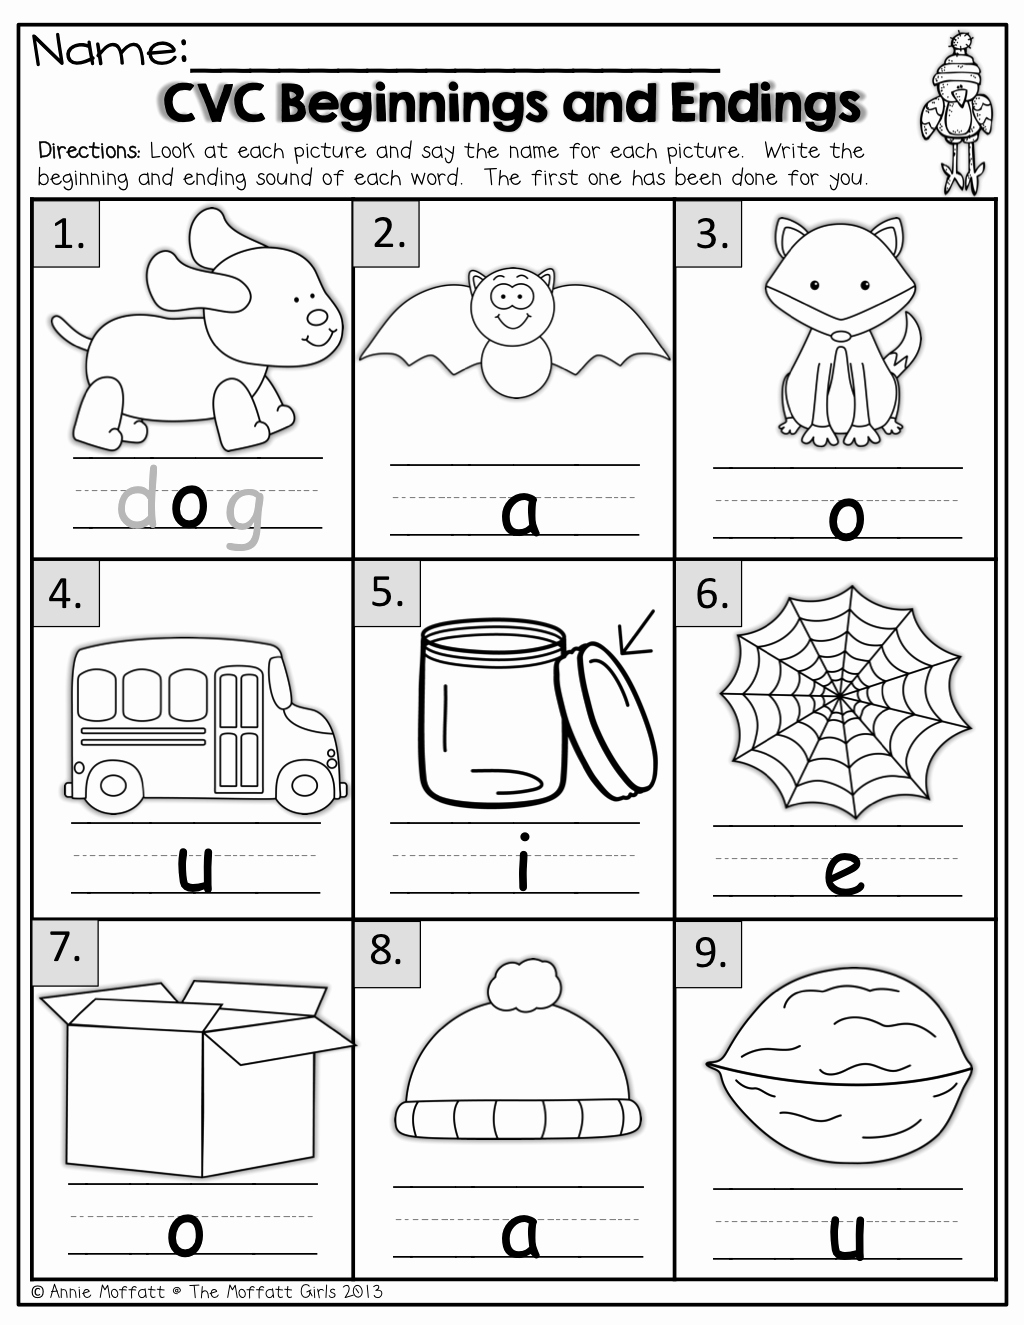 Cvc Worksheet Kindergarten Best Of Pin by Annie Moffatt On Kinderland Collaborative